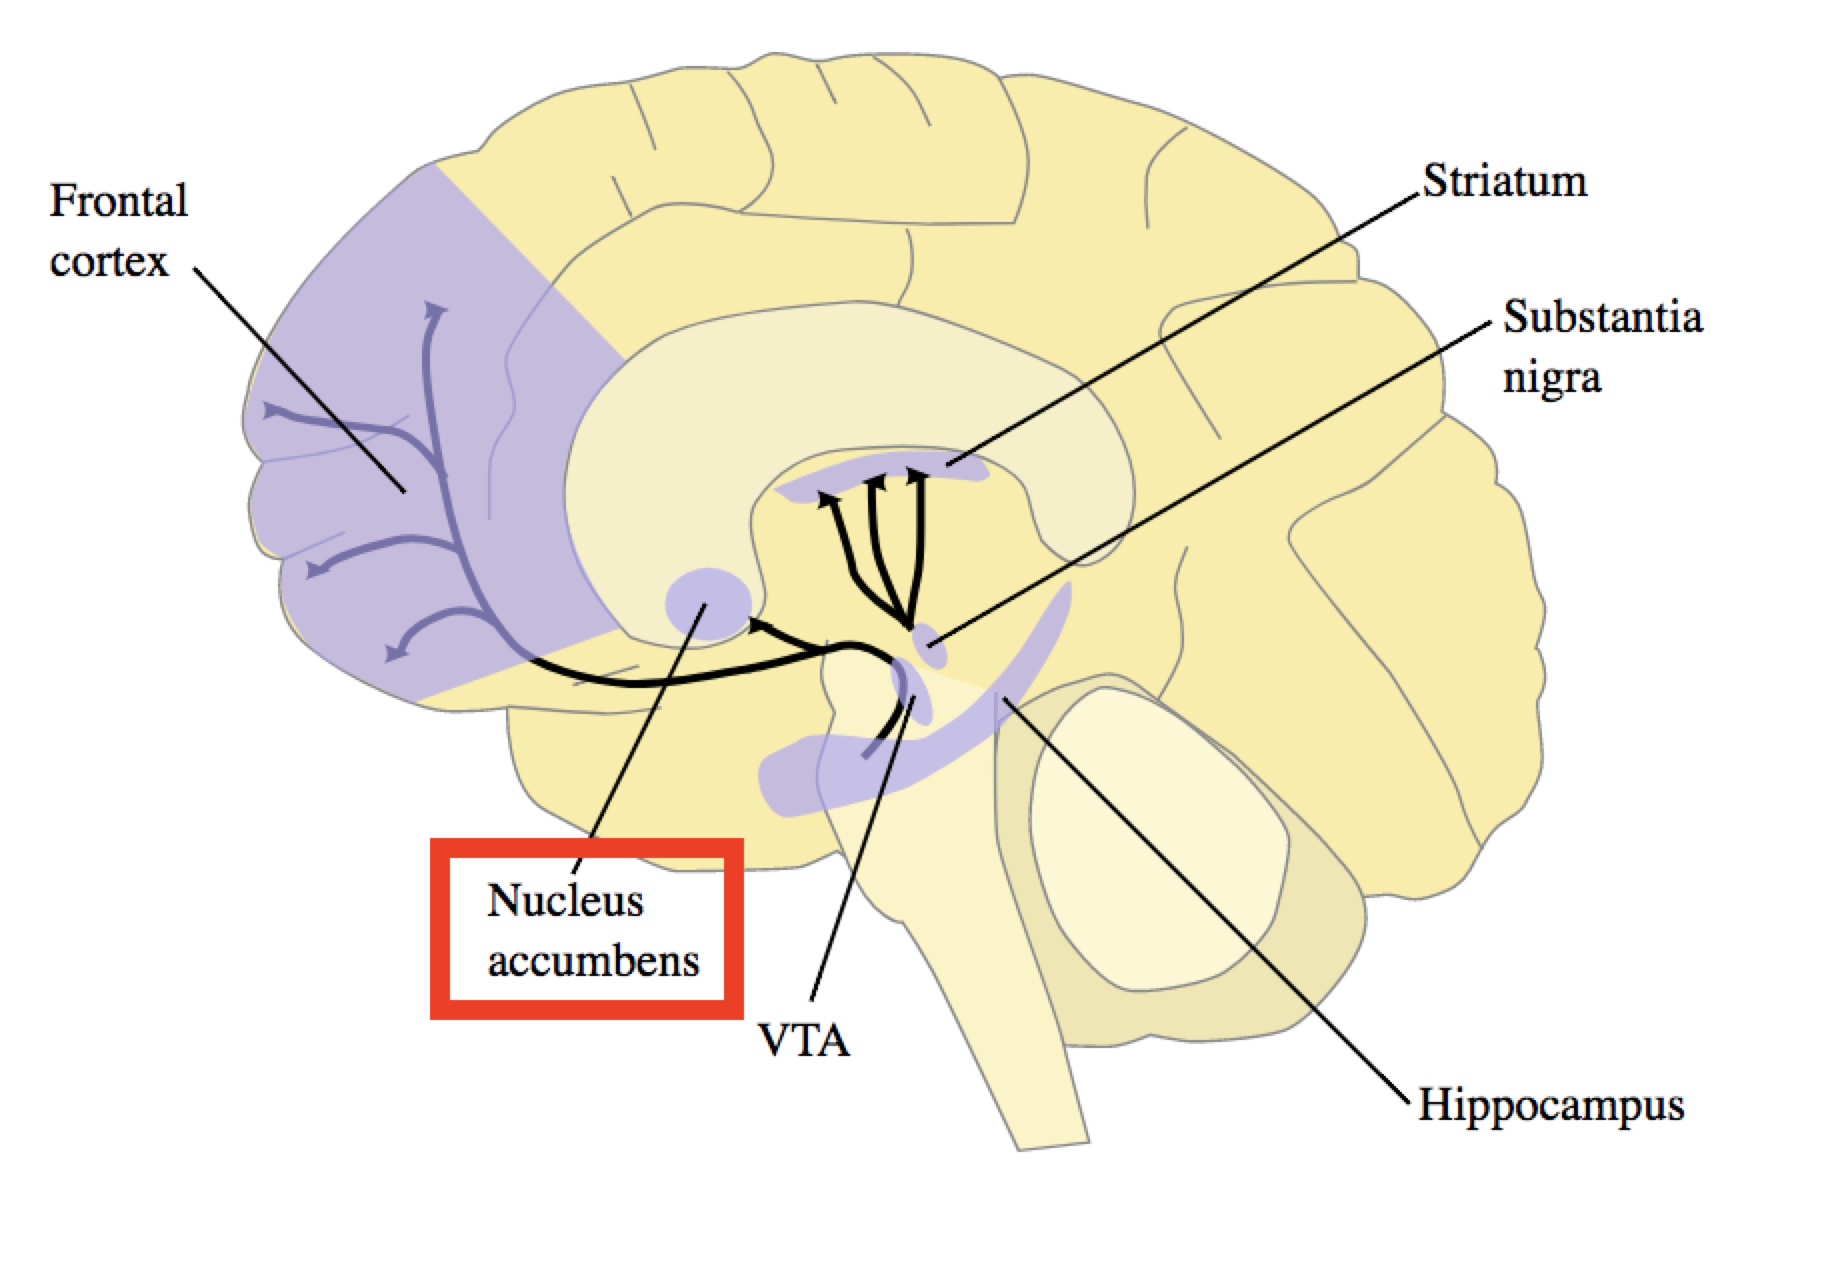 Image of the brain with the nucleus accumbens highlighted